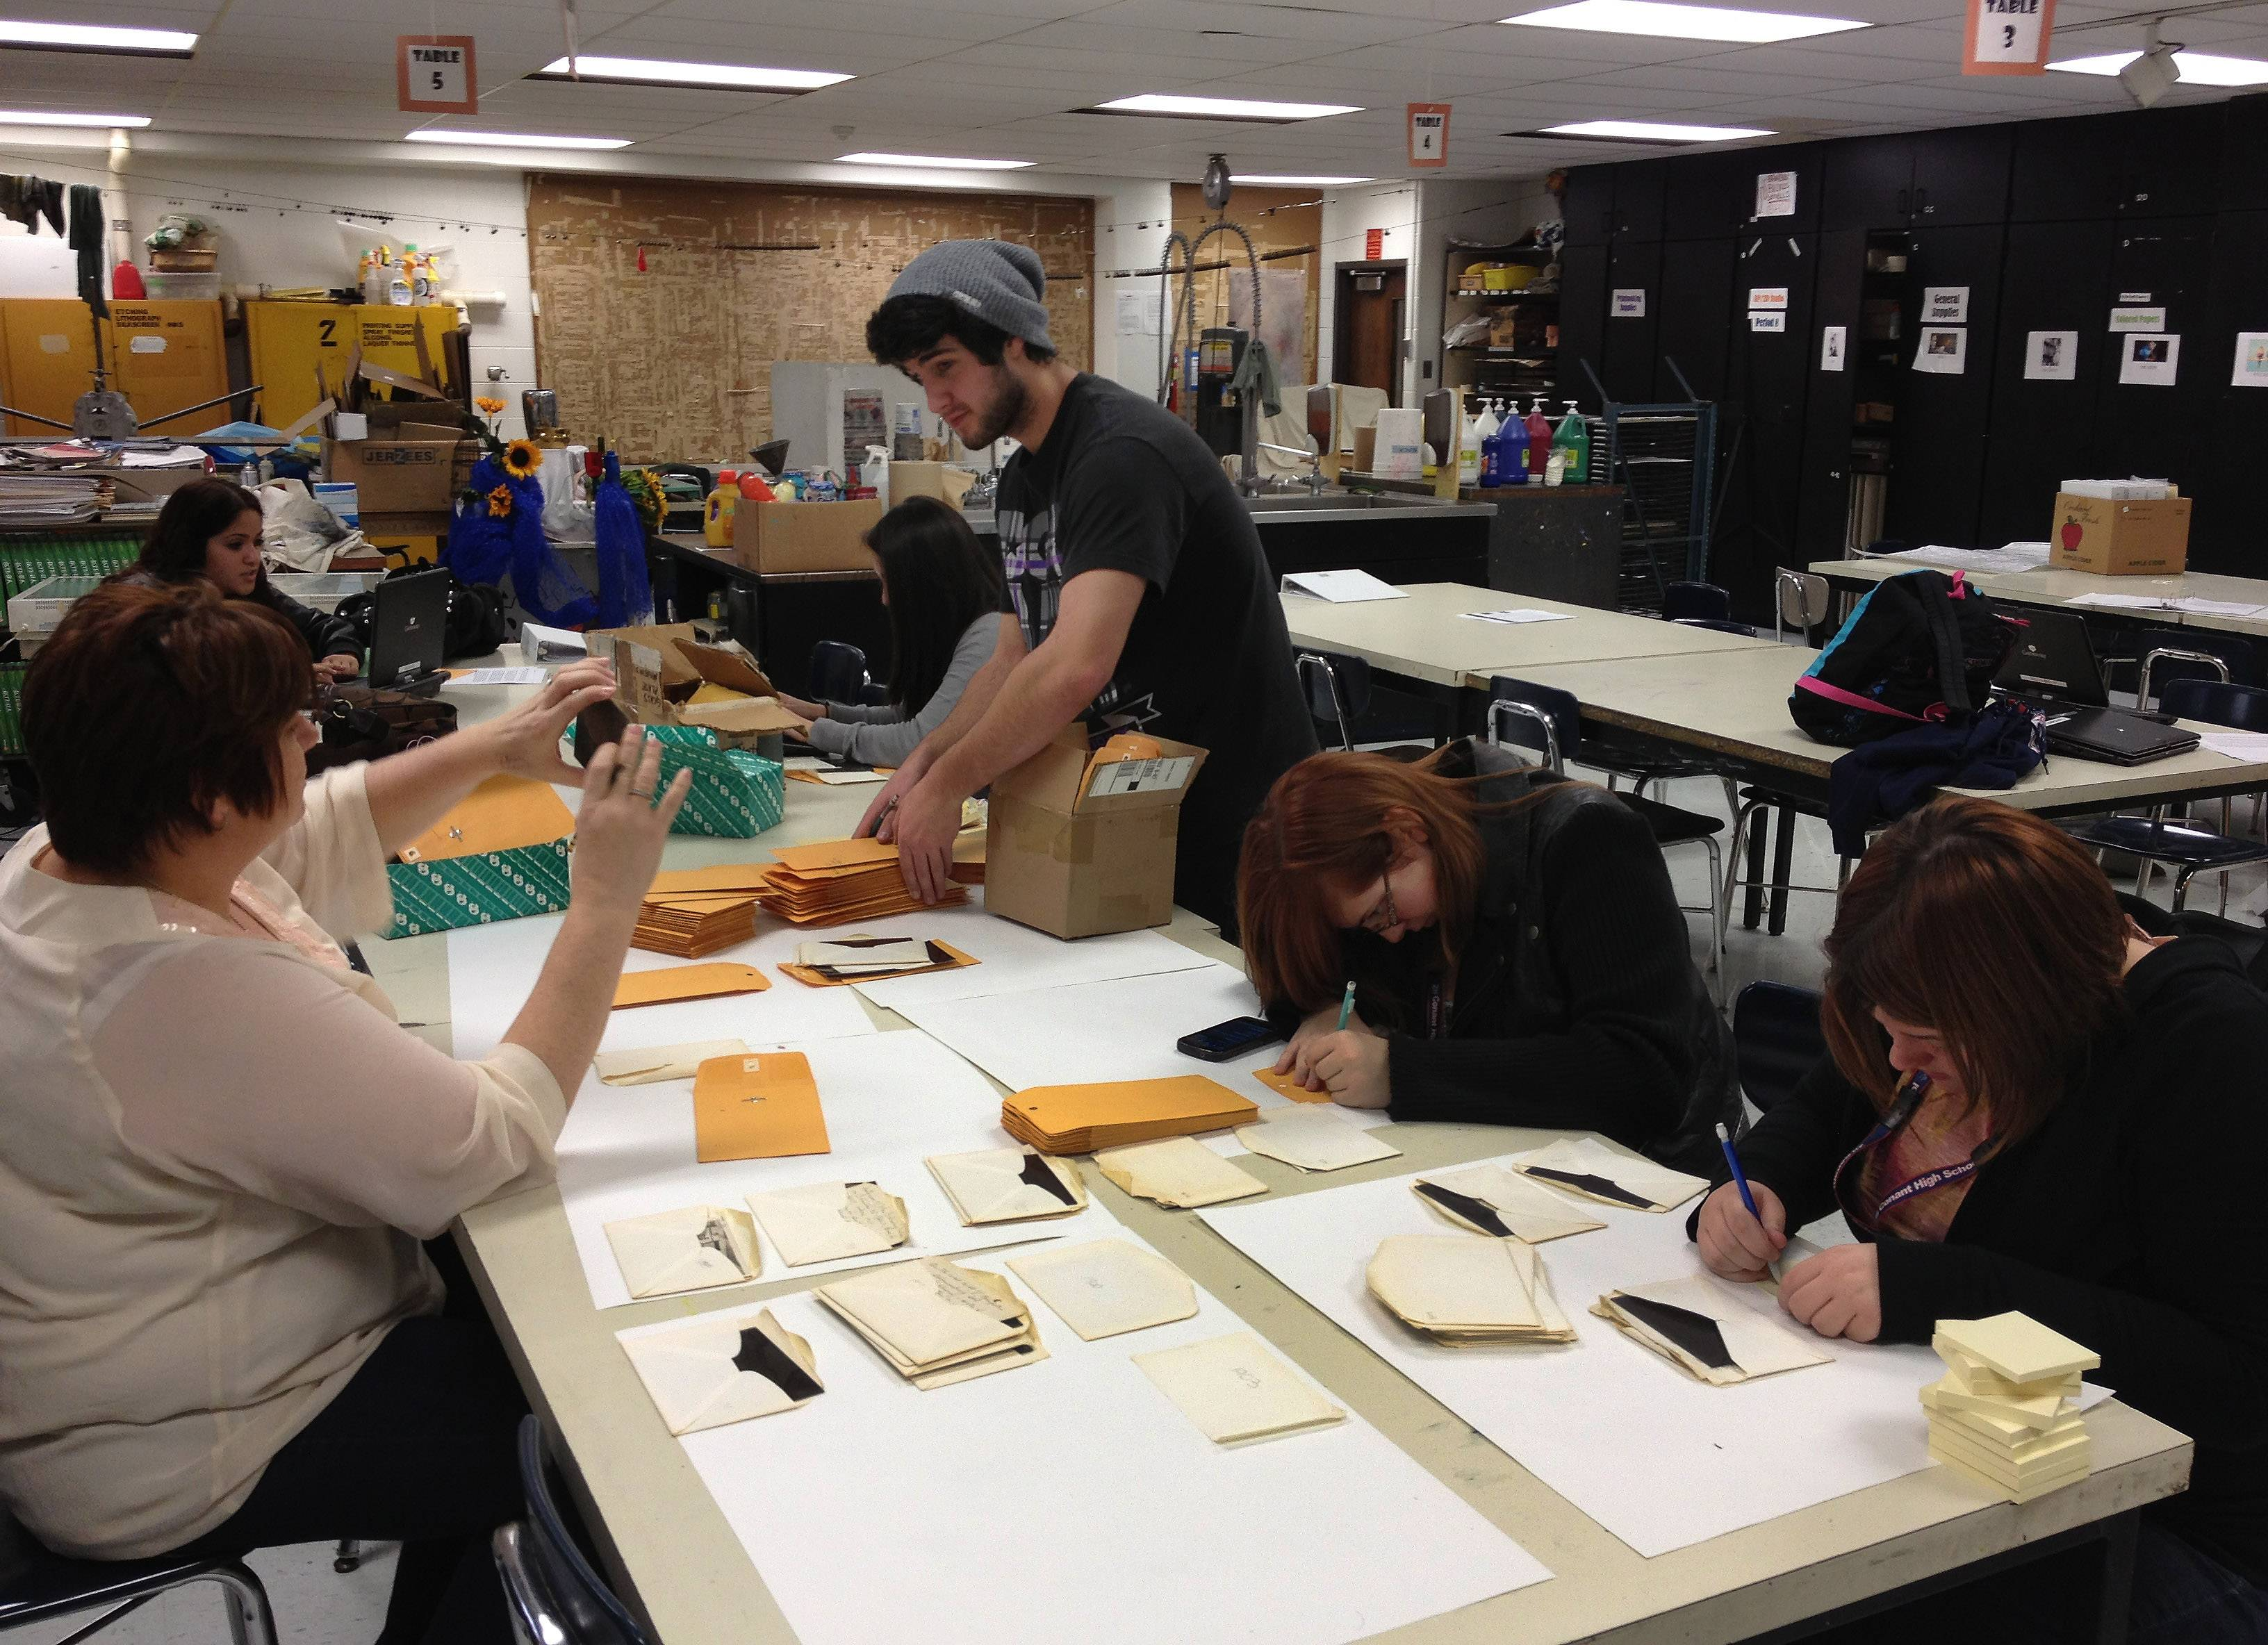 Conant students work on archiving some of the 100-plus glass-plate images they obtained depicting life in Schaumburg more than a century ago. The images will go on display today at the high school.